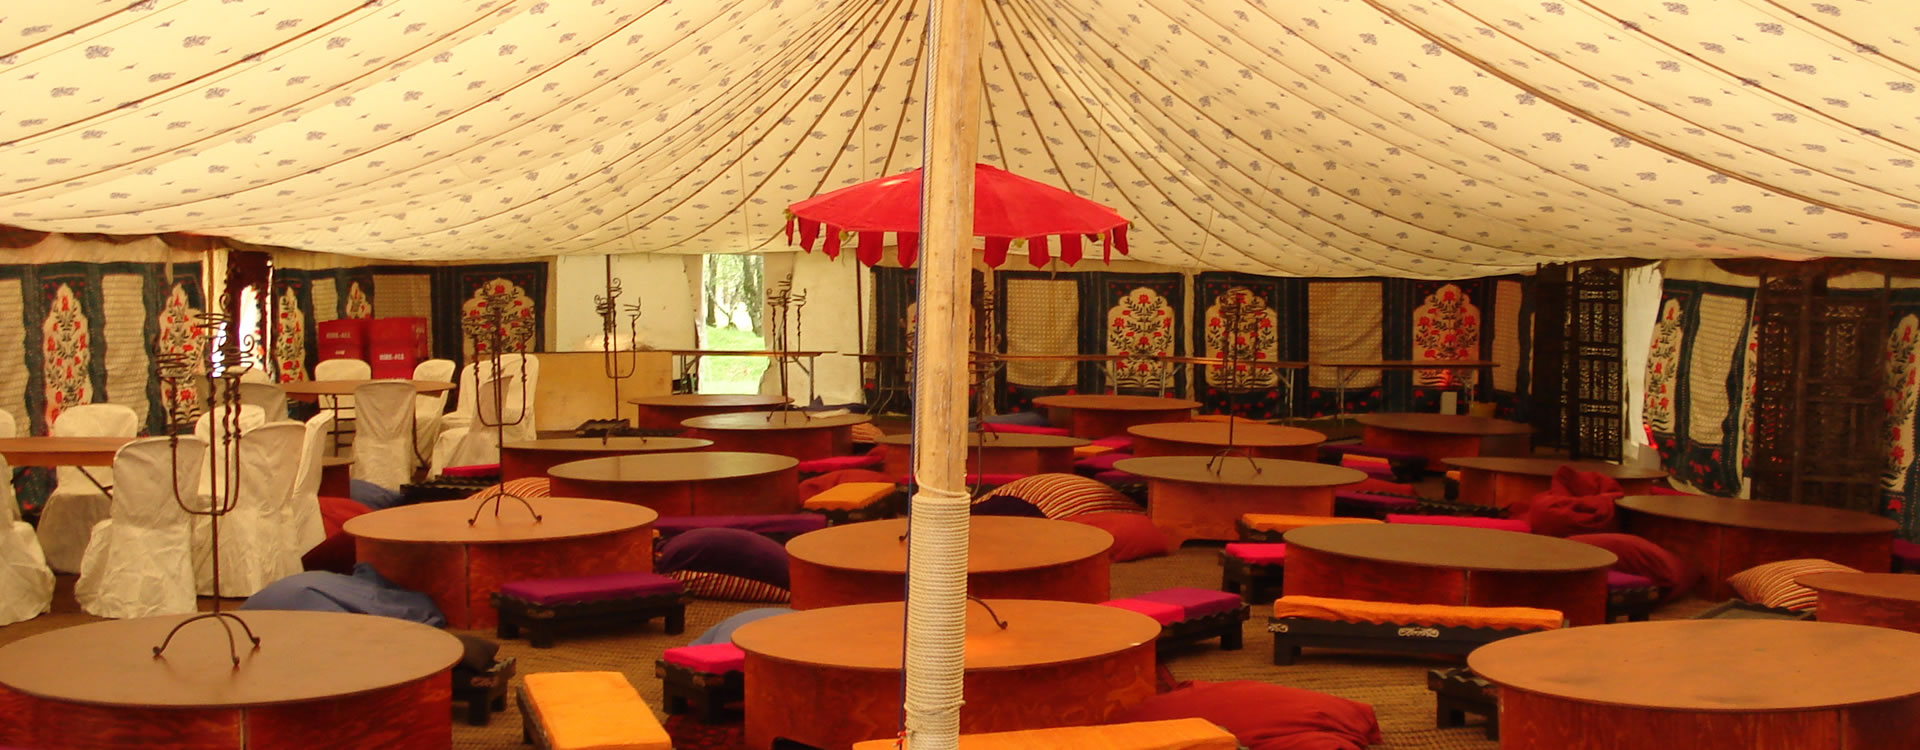 full-width-Indian-1 & Indian and Exotic tent and marquee hire for parties weddings and ...